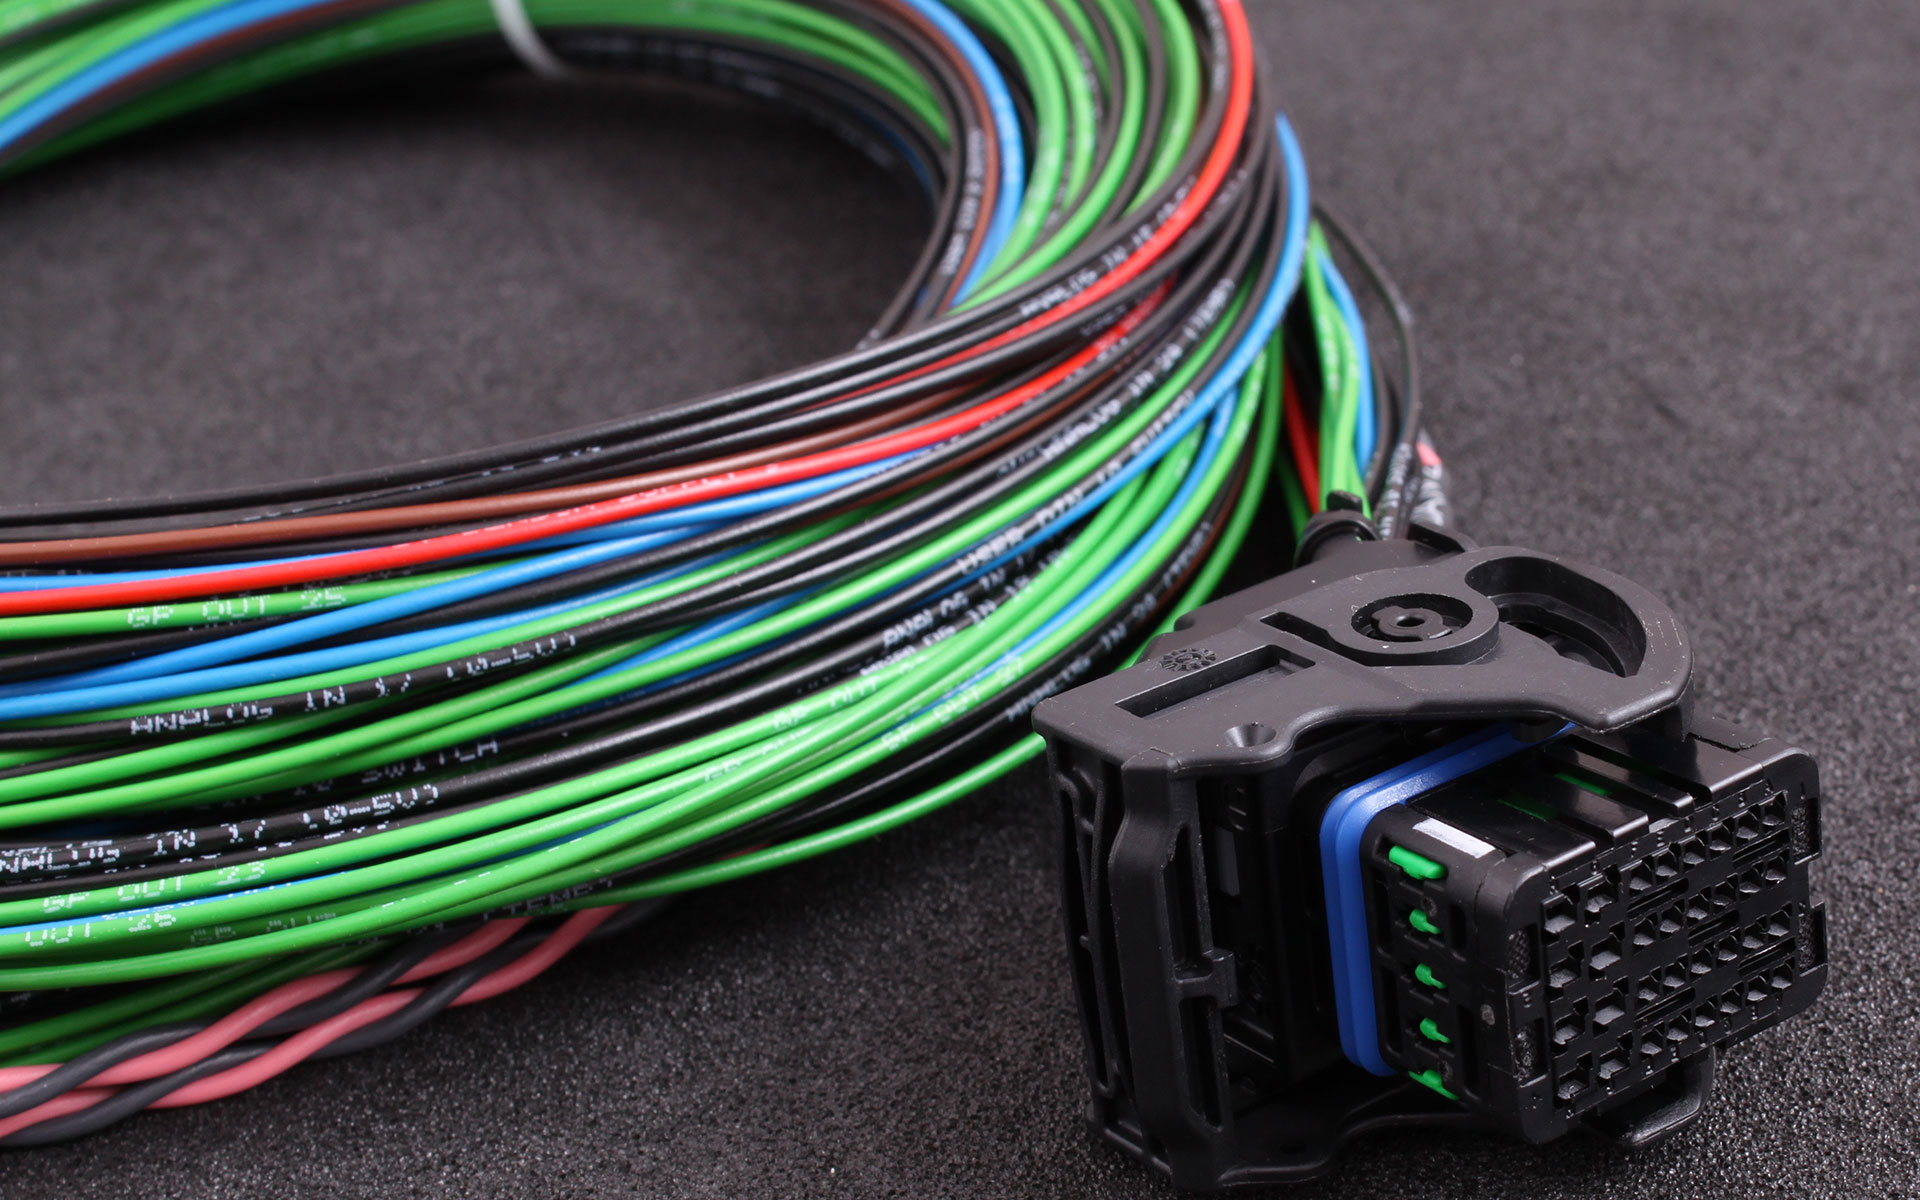 Maxxecu Pro Most Advanced And Professional Engine Management Wire Harness Labels Connector 4 Is Like All Other Harnesses Made Of Automotive Thin Wall Cable With Printed Extends Functionality